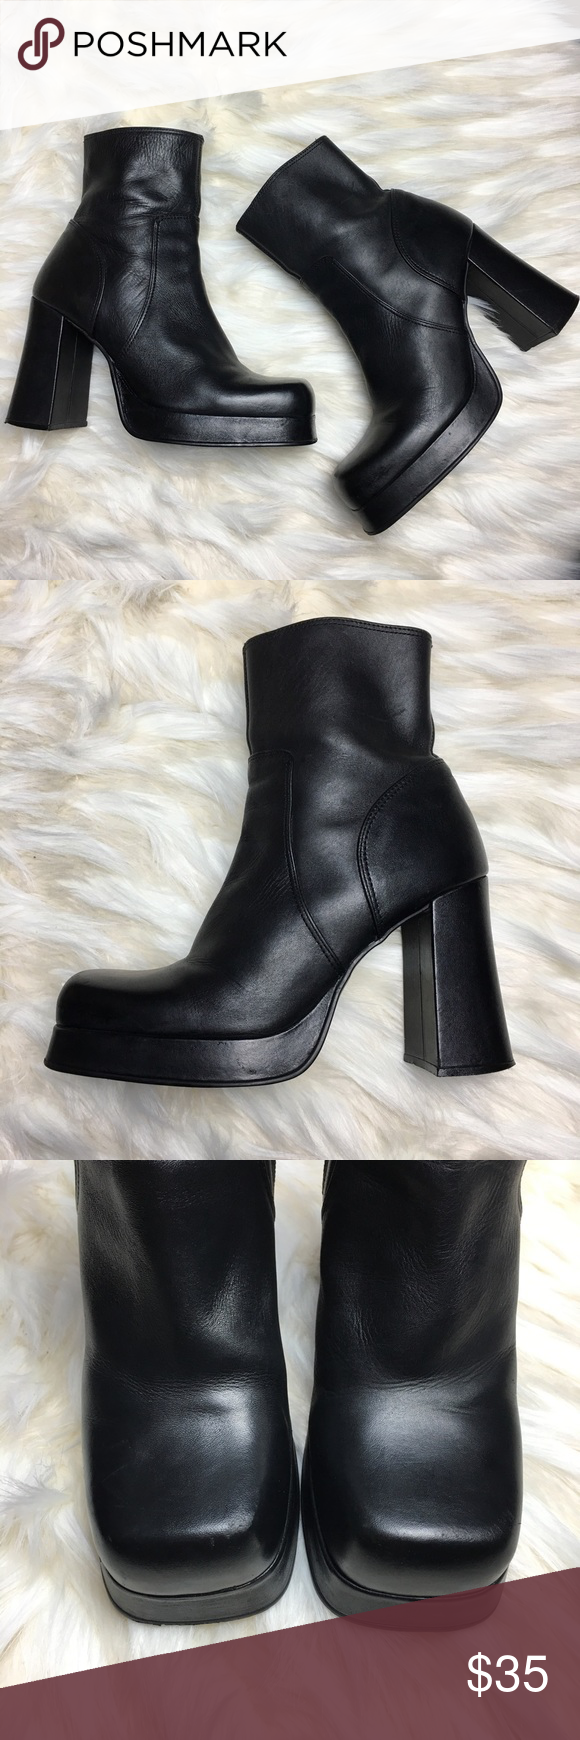 9a7607300ba Vintage 90s Chunky Boots Excellent Vintage Condition. Upper Leather ...